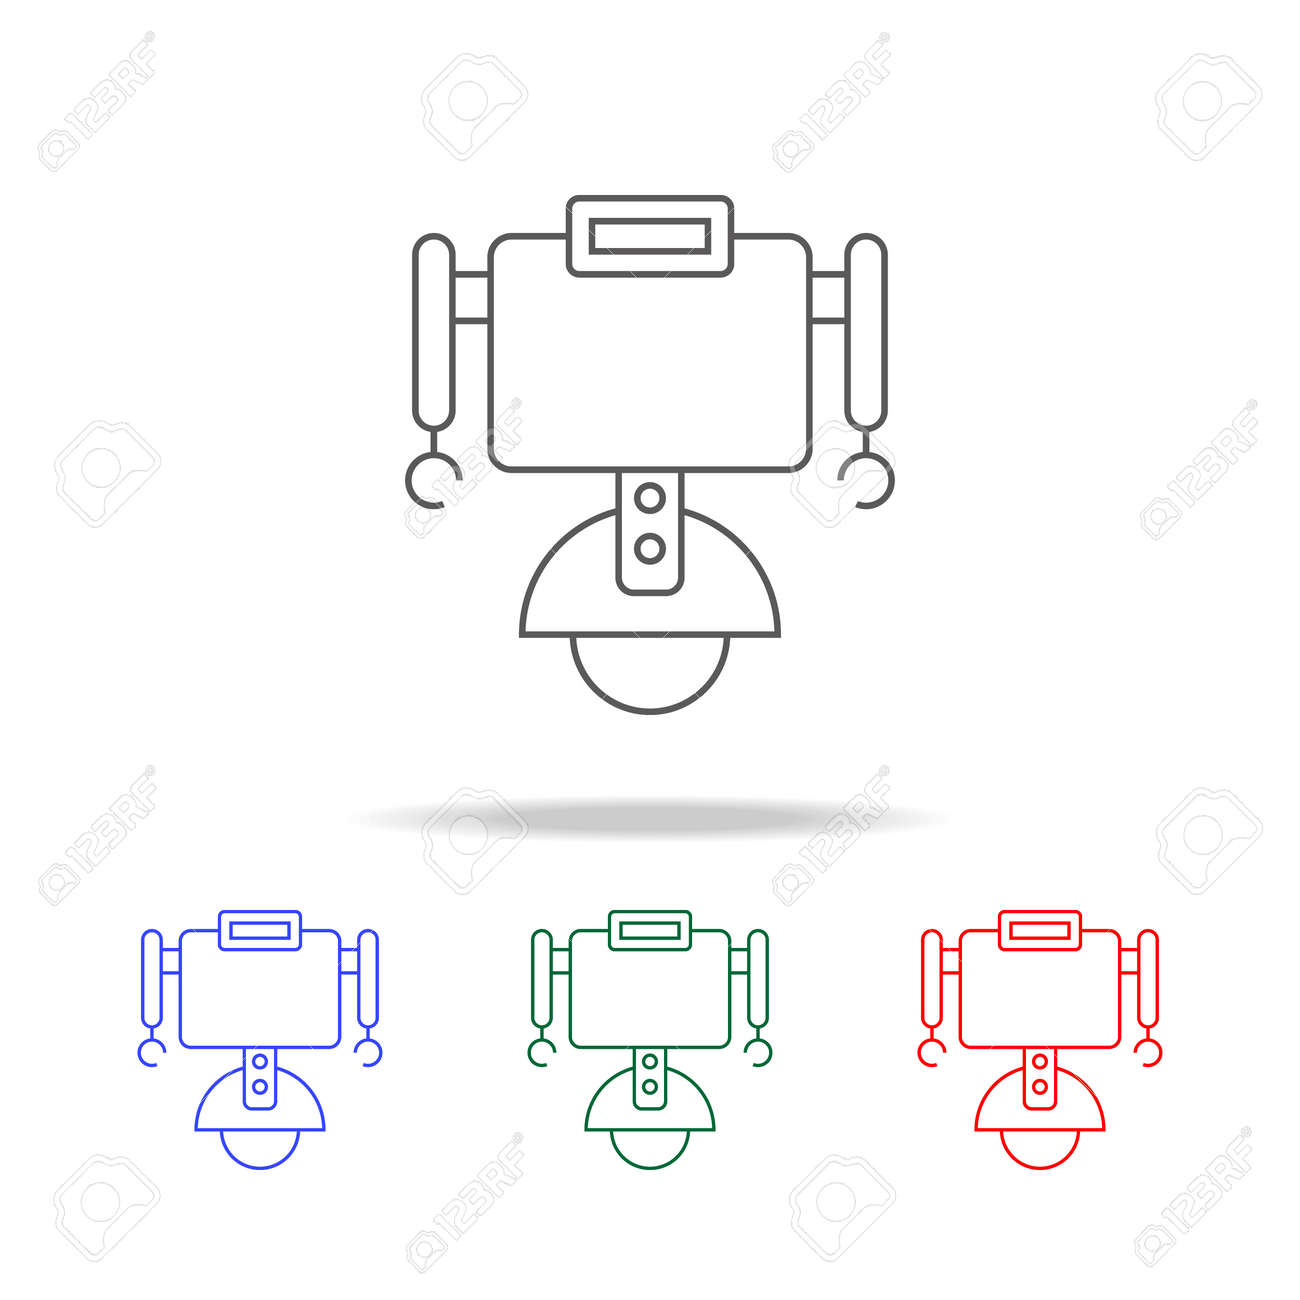 Robot on wheels icon  Elements in multicolored icons for mobile